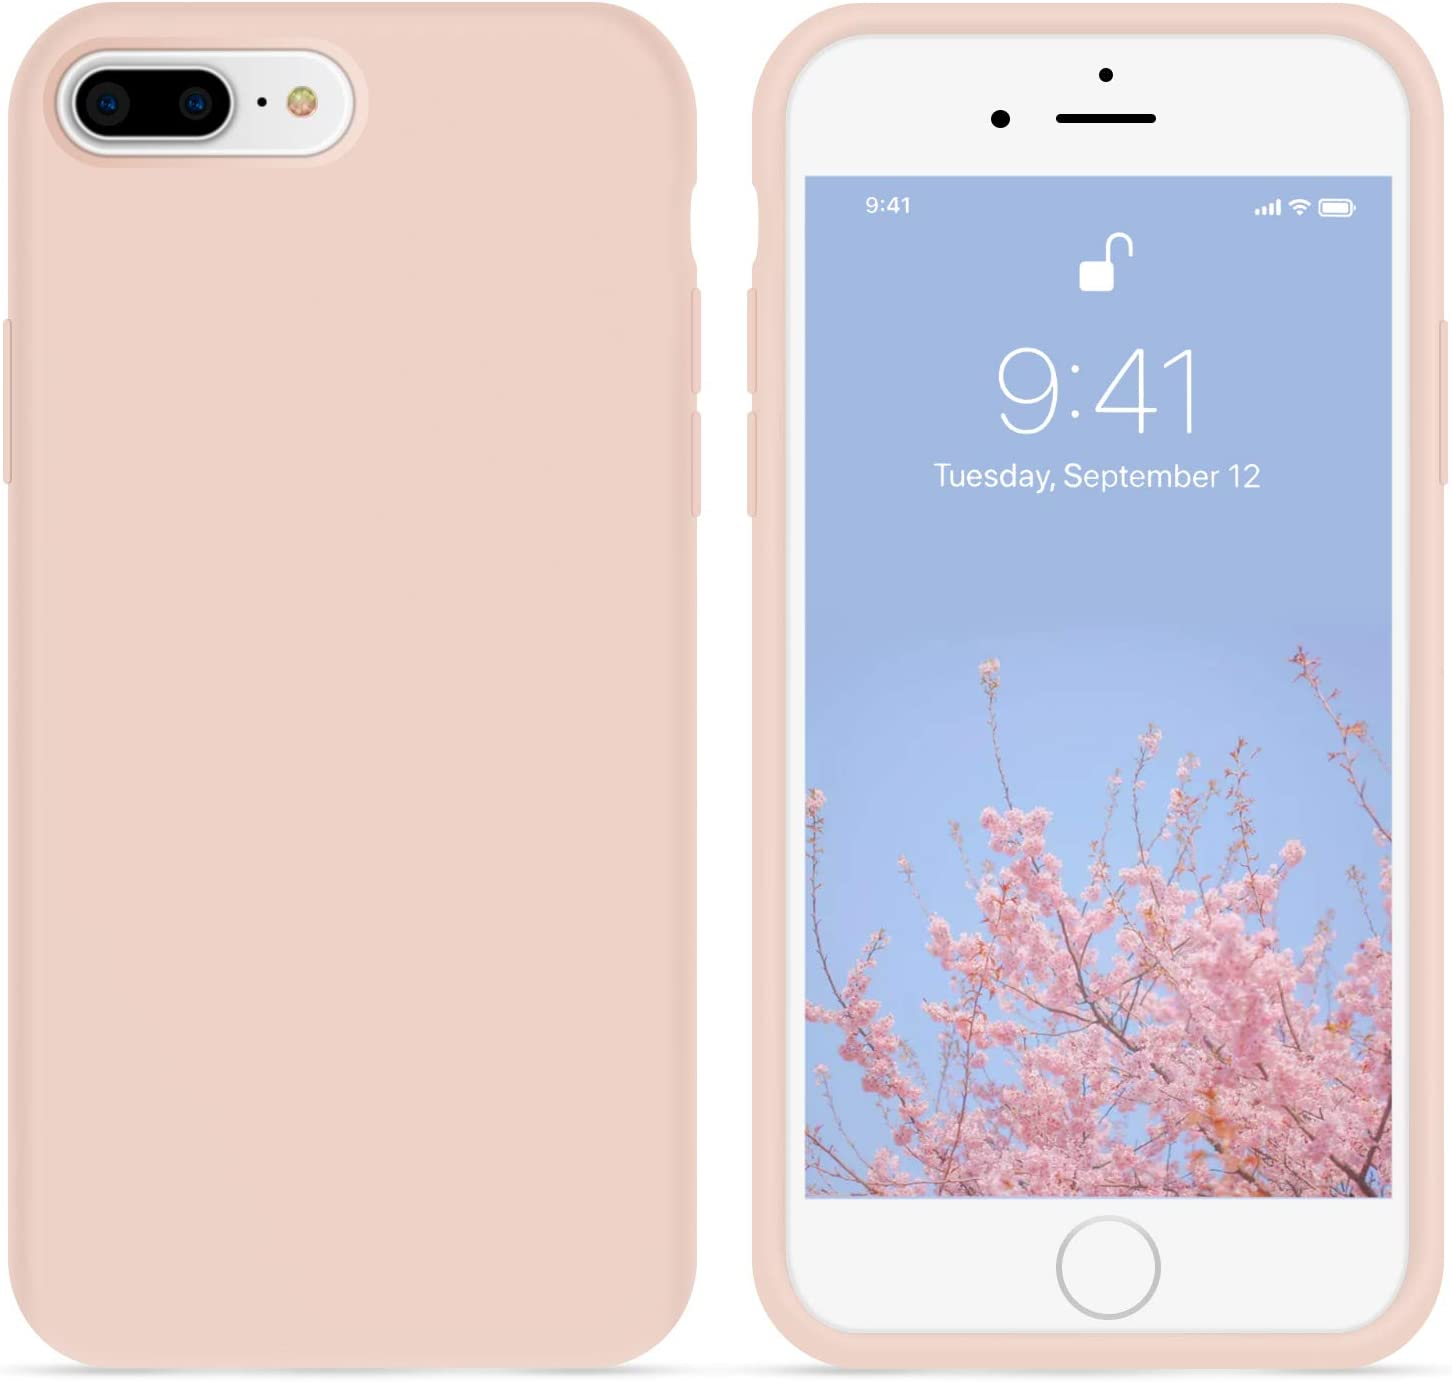 OTOFLY iPhone 8 Plus Case,iPhone 7 Plus Case,[Silky and Soft Touch Series] Premium Soft Silicone Rubber Full-Body Protective Bumper Case Compatible with iPhone 7/8 Plus (Pink Sand)